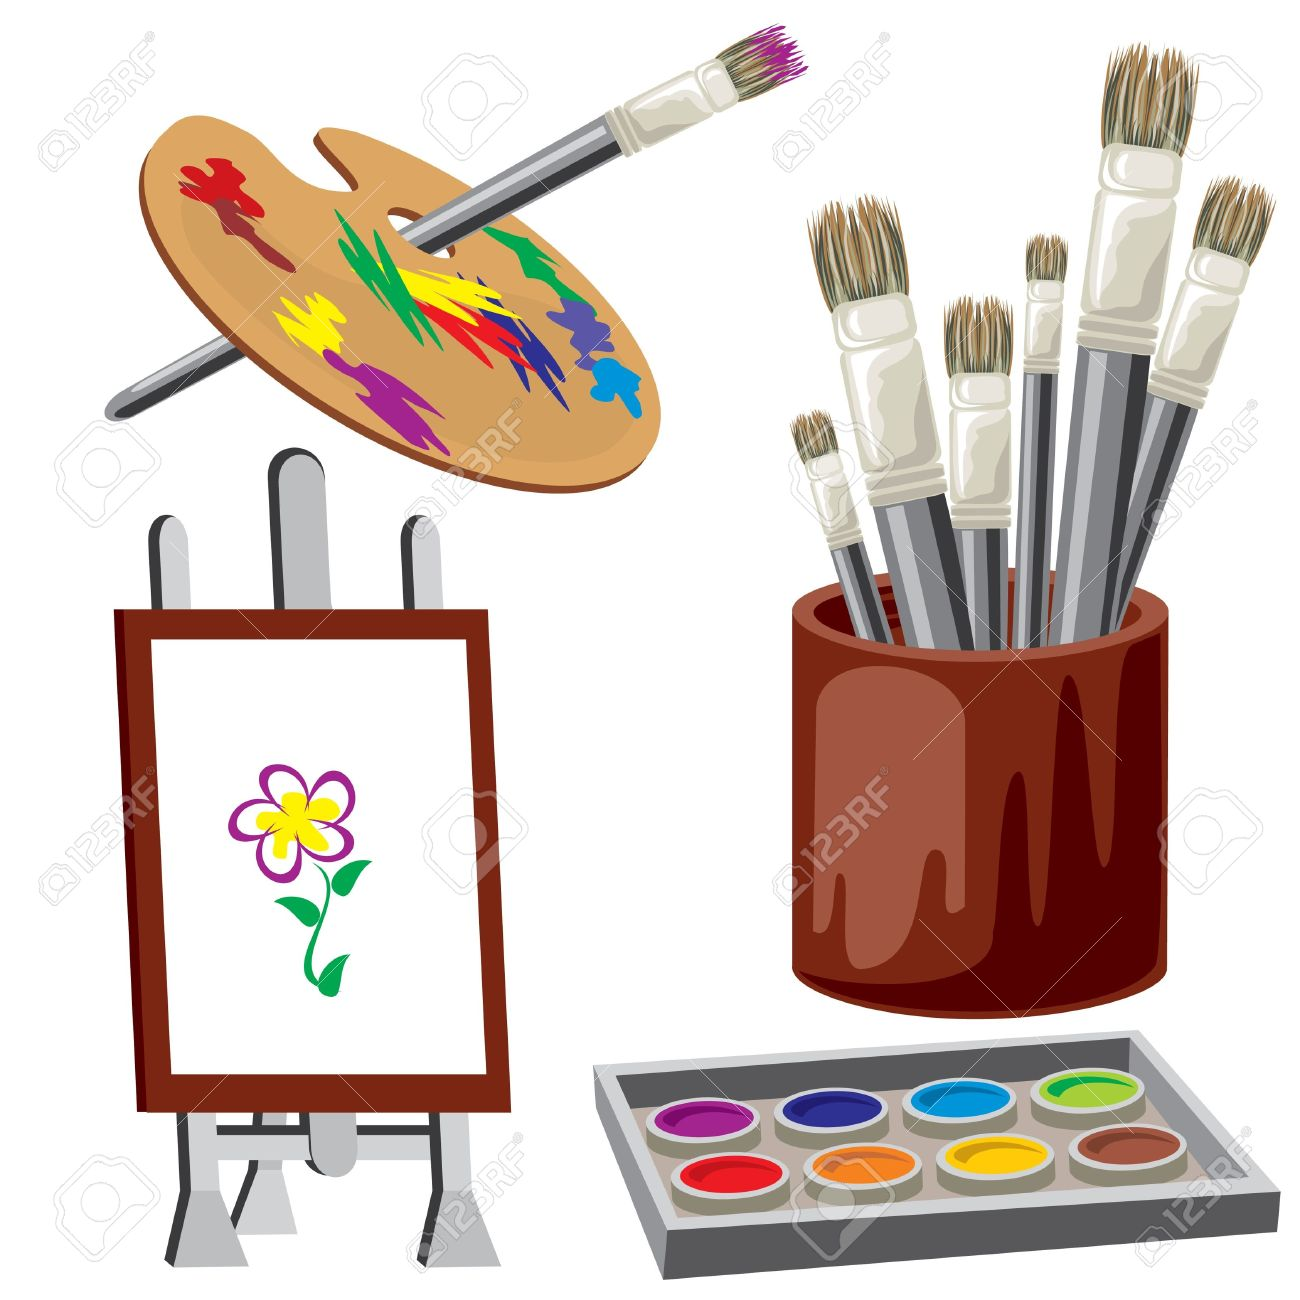 Craft clipart craft tool. Arts and crafts free